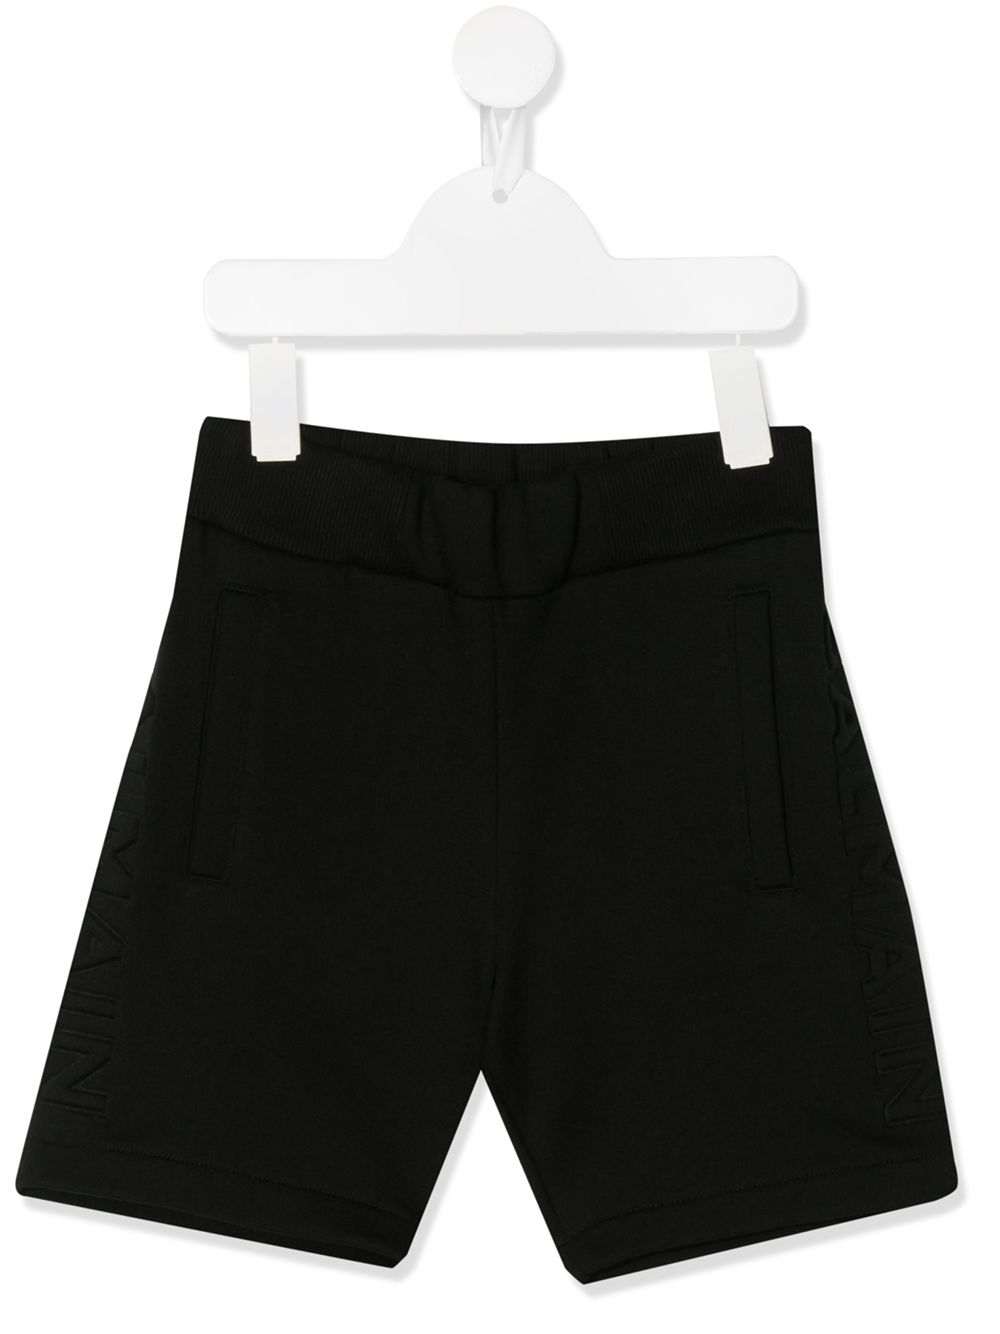 BALMAIN KIDS tailored shorts black - Maison De Fashion